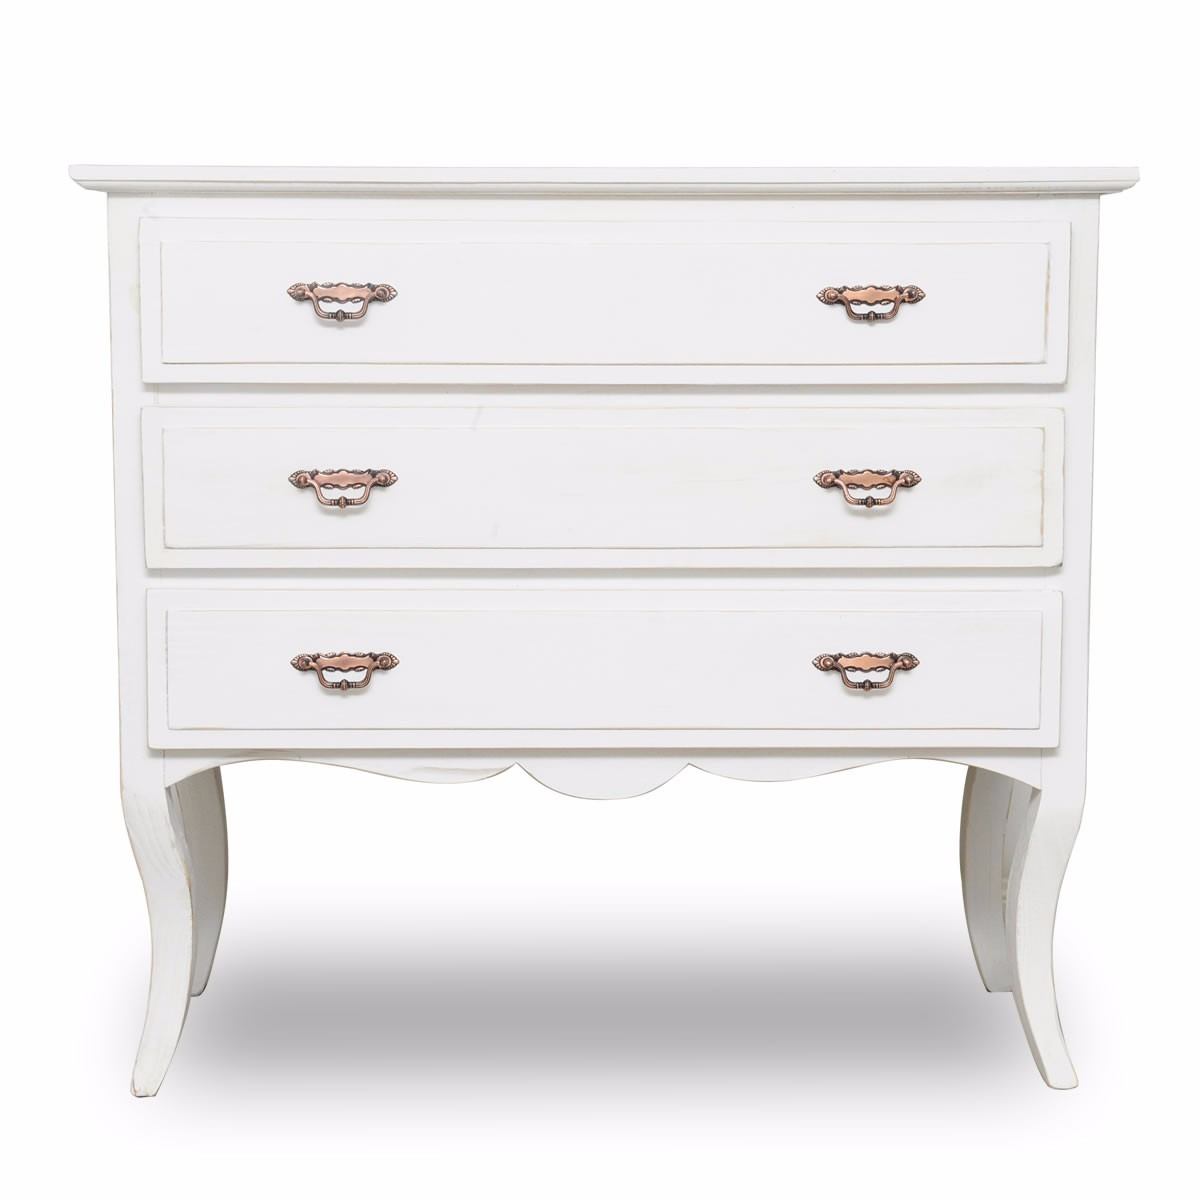 Shabby chic muebles interesting you may also like decoracin estilo shabby chic with shabby chic - Muebles shabby ...